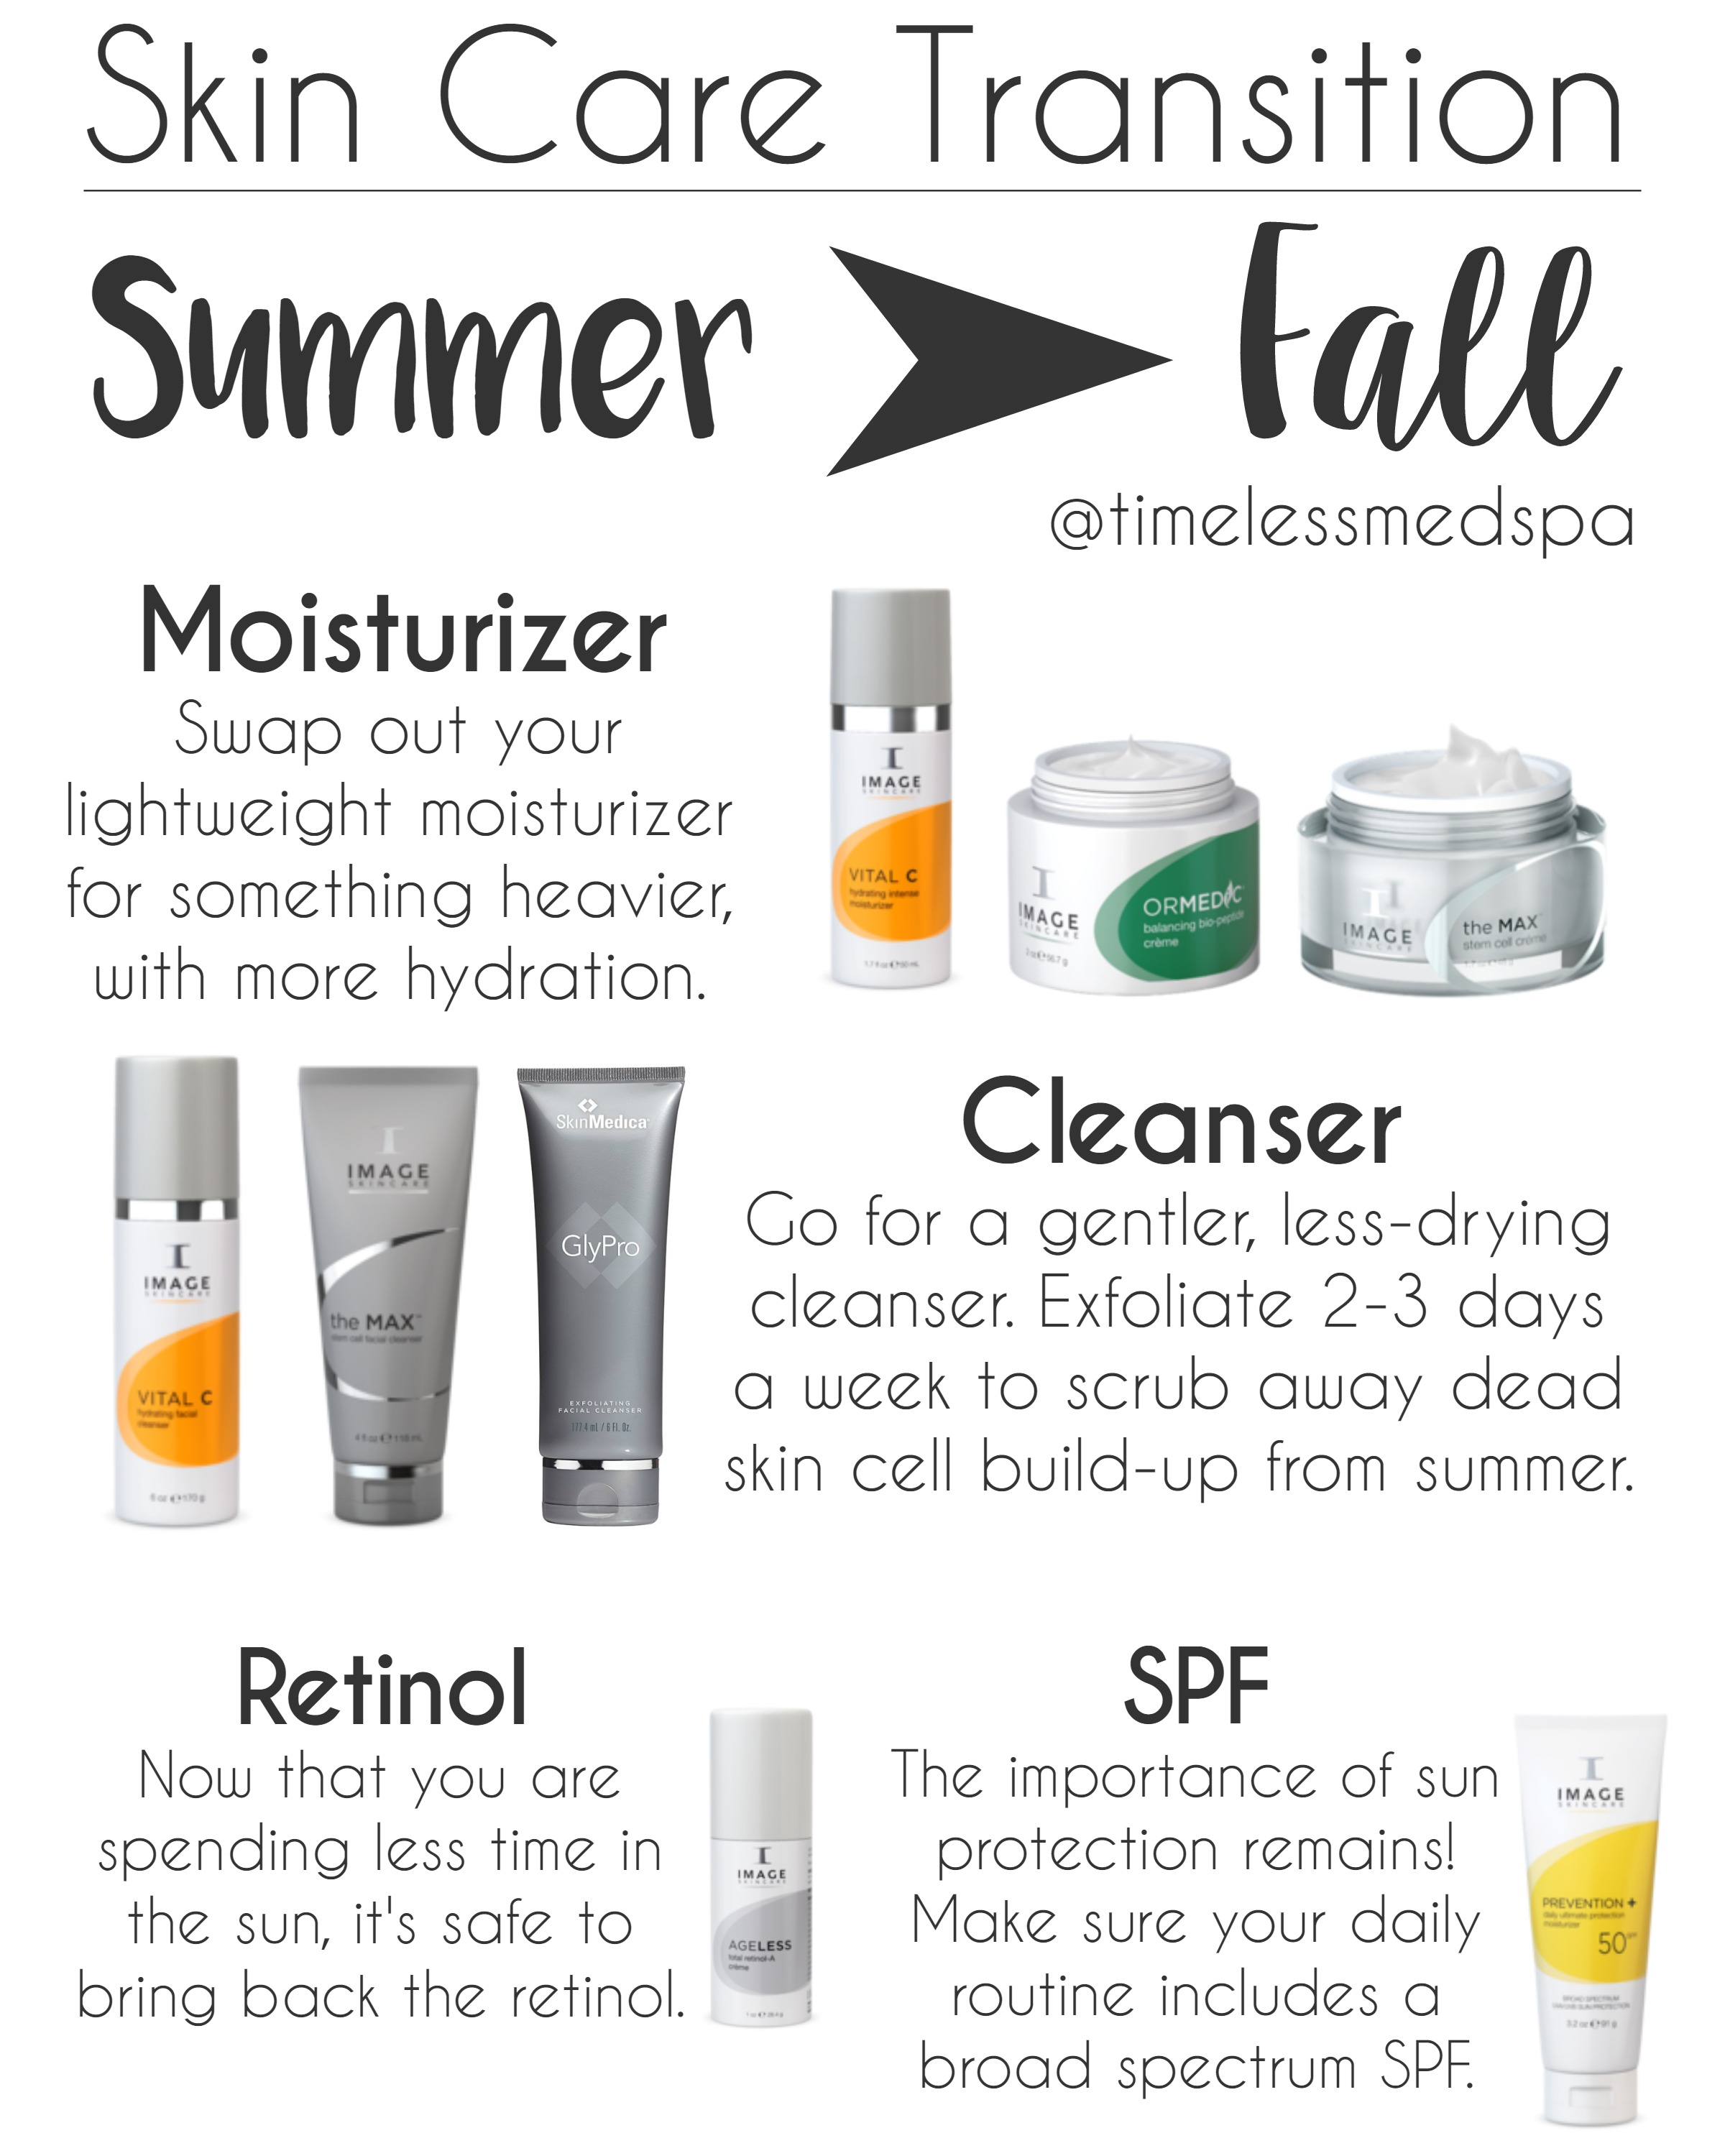 Summer Skin Care: Summer-to-Fall Skin Care Routine